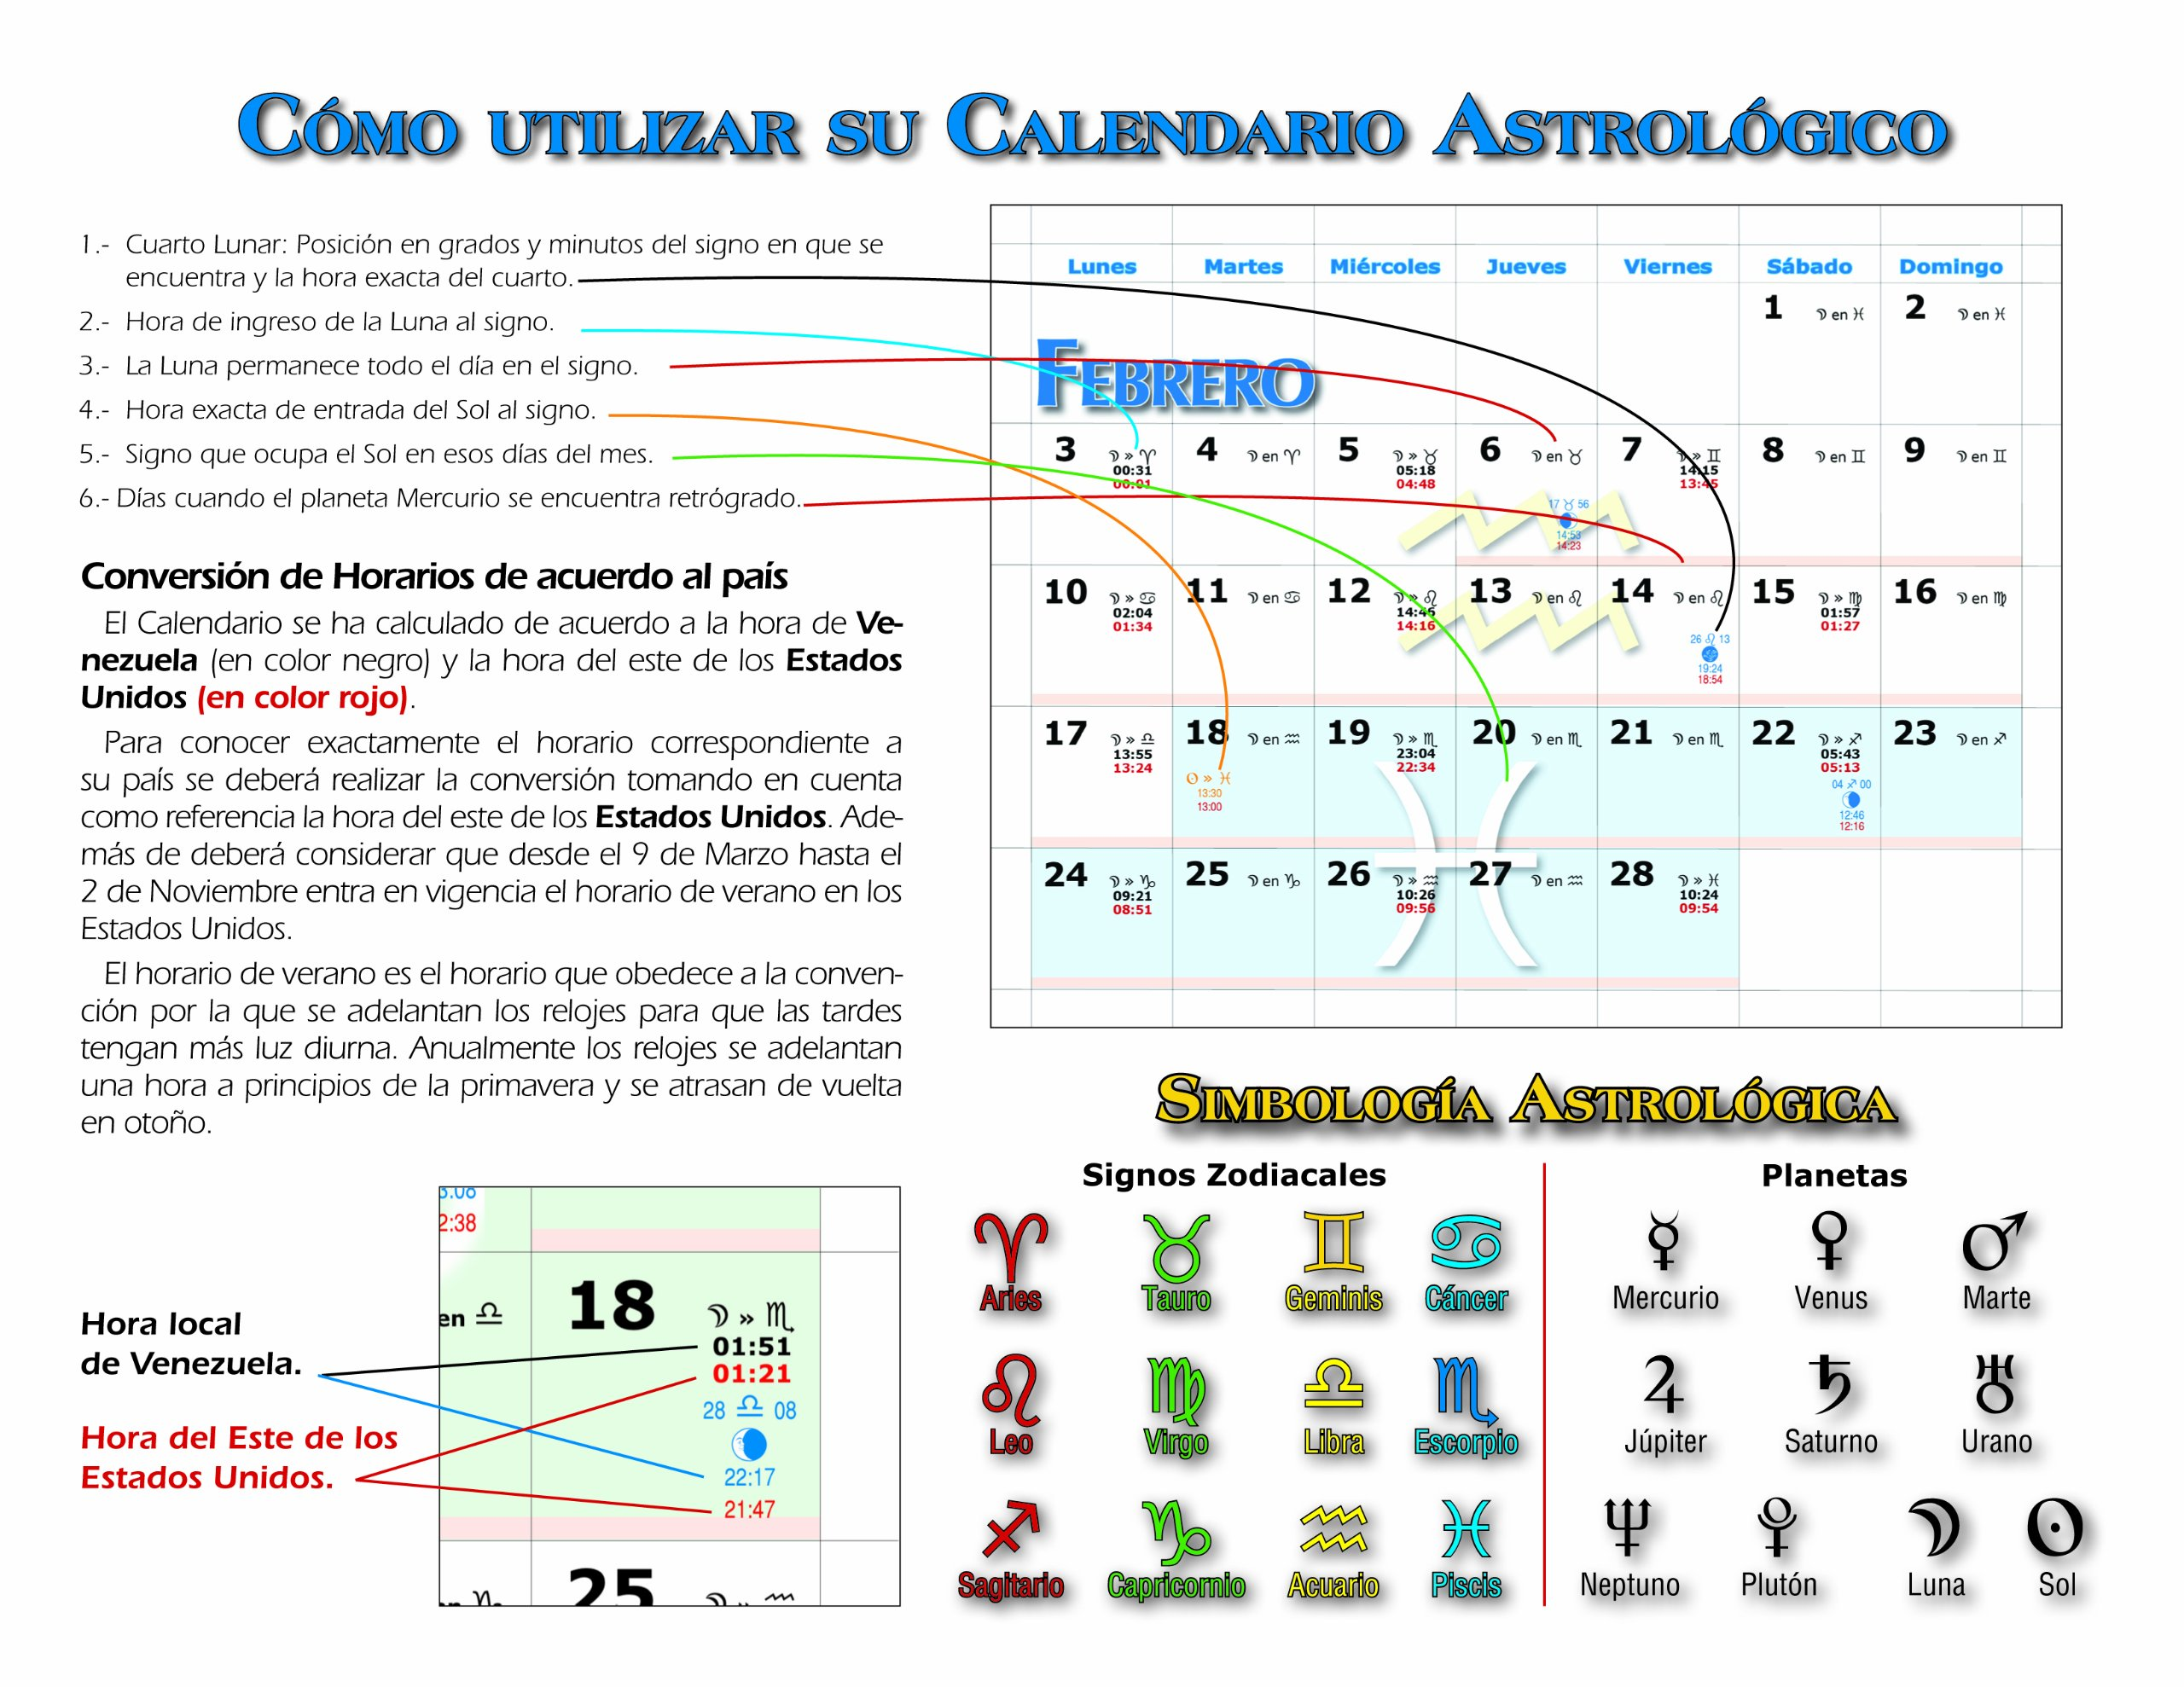 Calendario Astrologico 2014 (Spanish Edition): Enrico Mariani, Centro de Estudios Astrologicos: 9789806405776: Amazon.com: Books